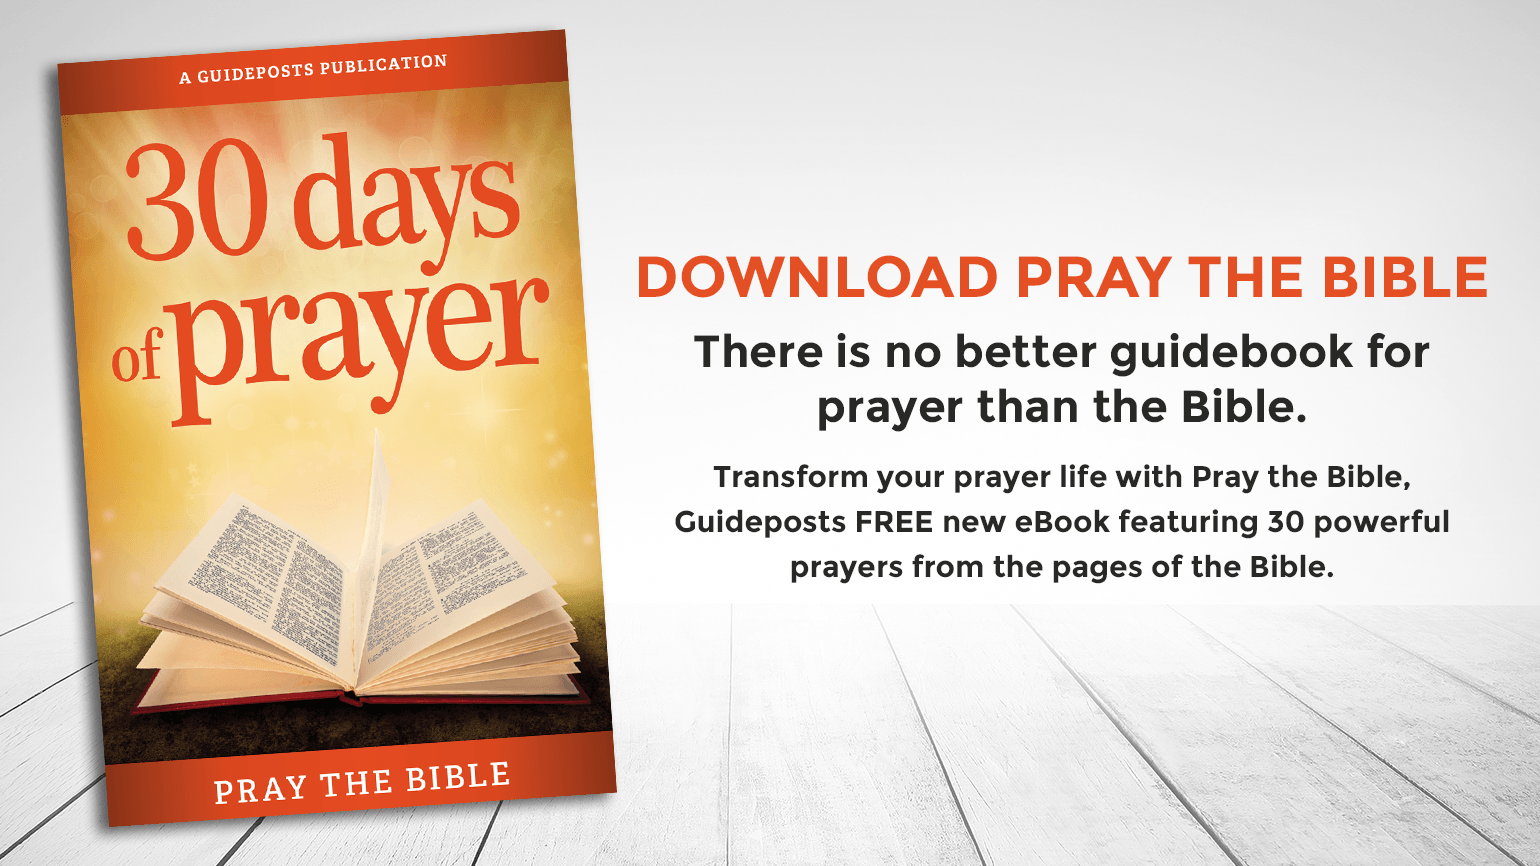 5 Powerful Prayers from the Bible | Guideposts